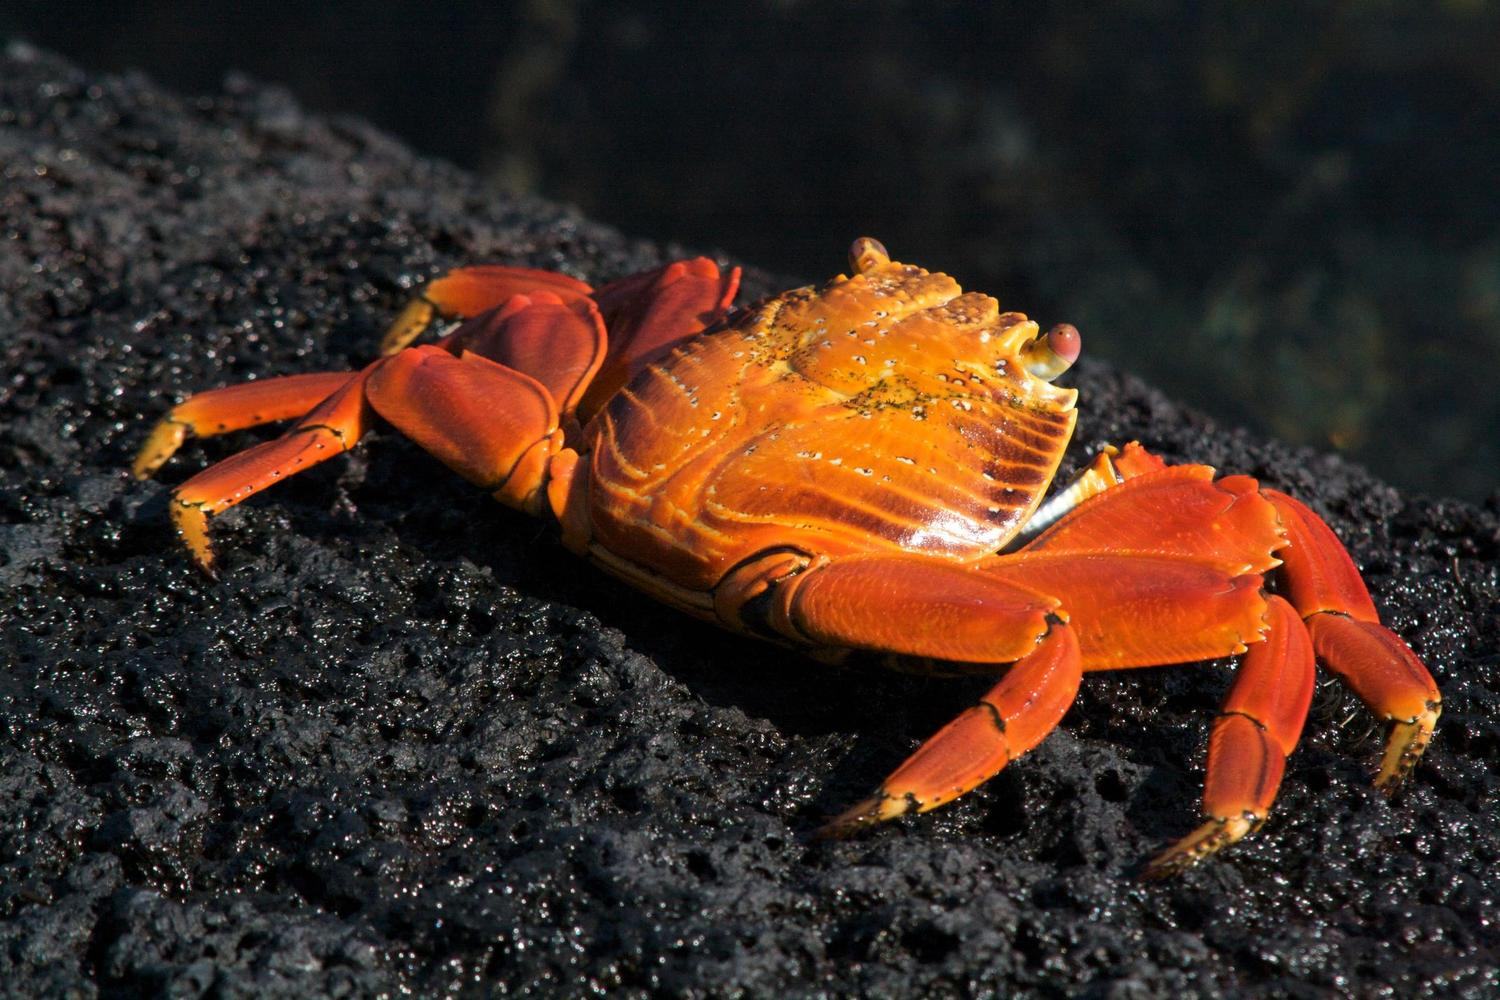 Sally Lightfoot crab in contrast with lava, Galapagos